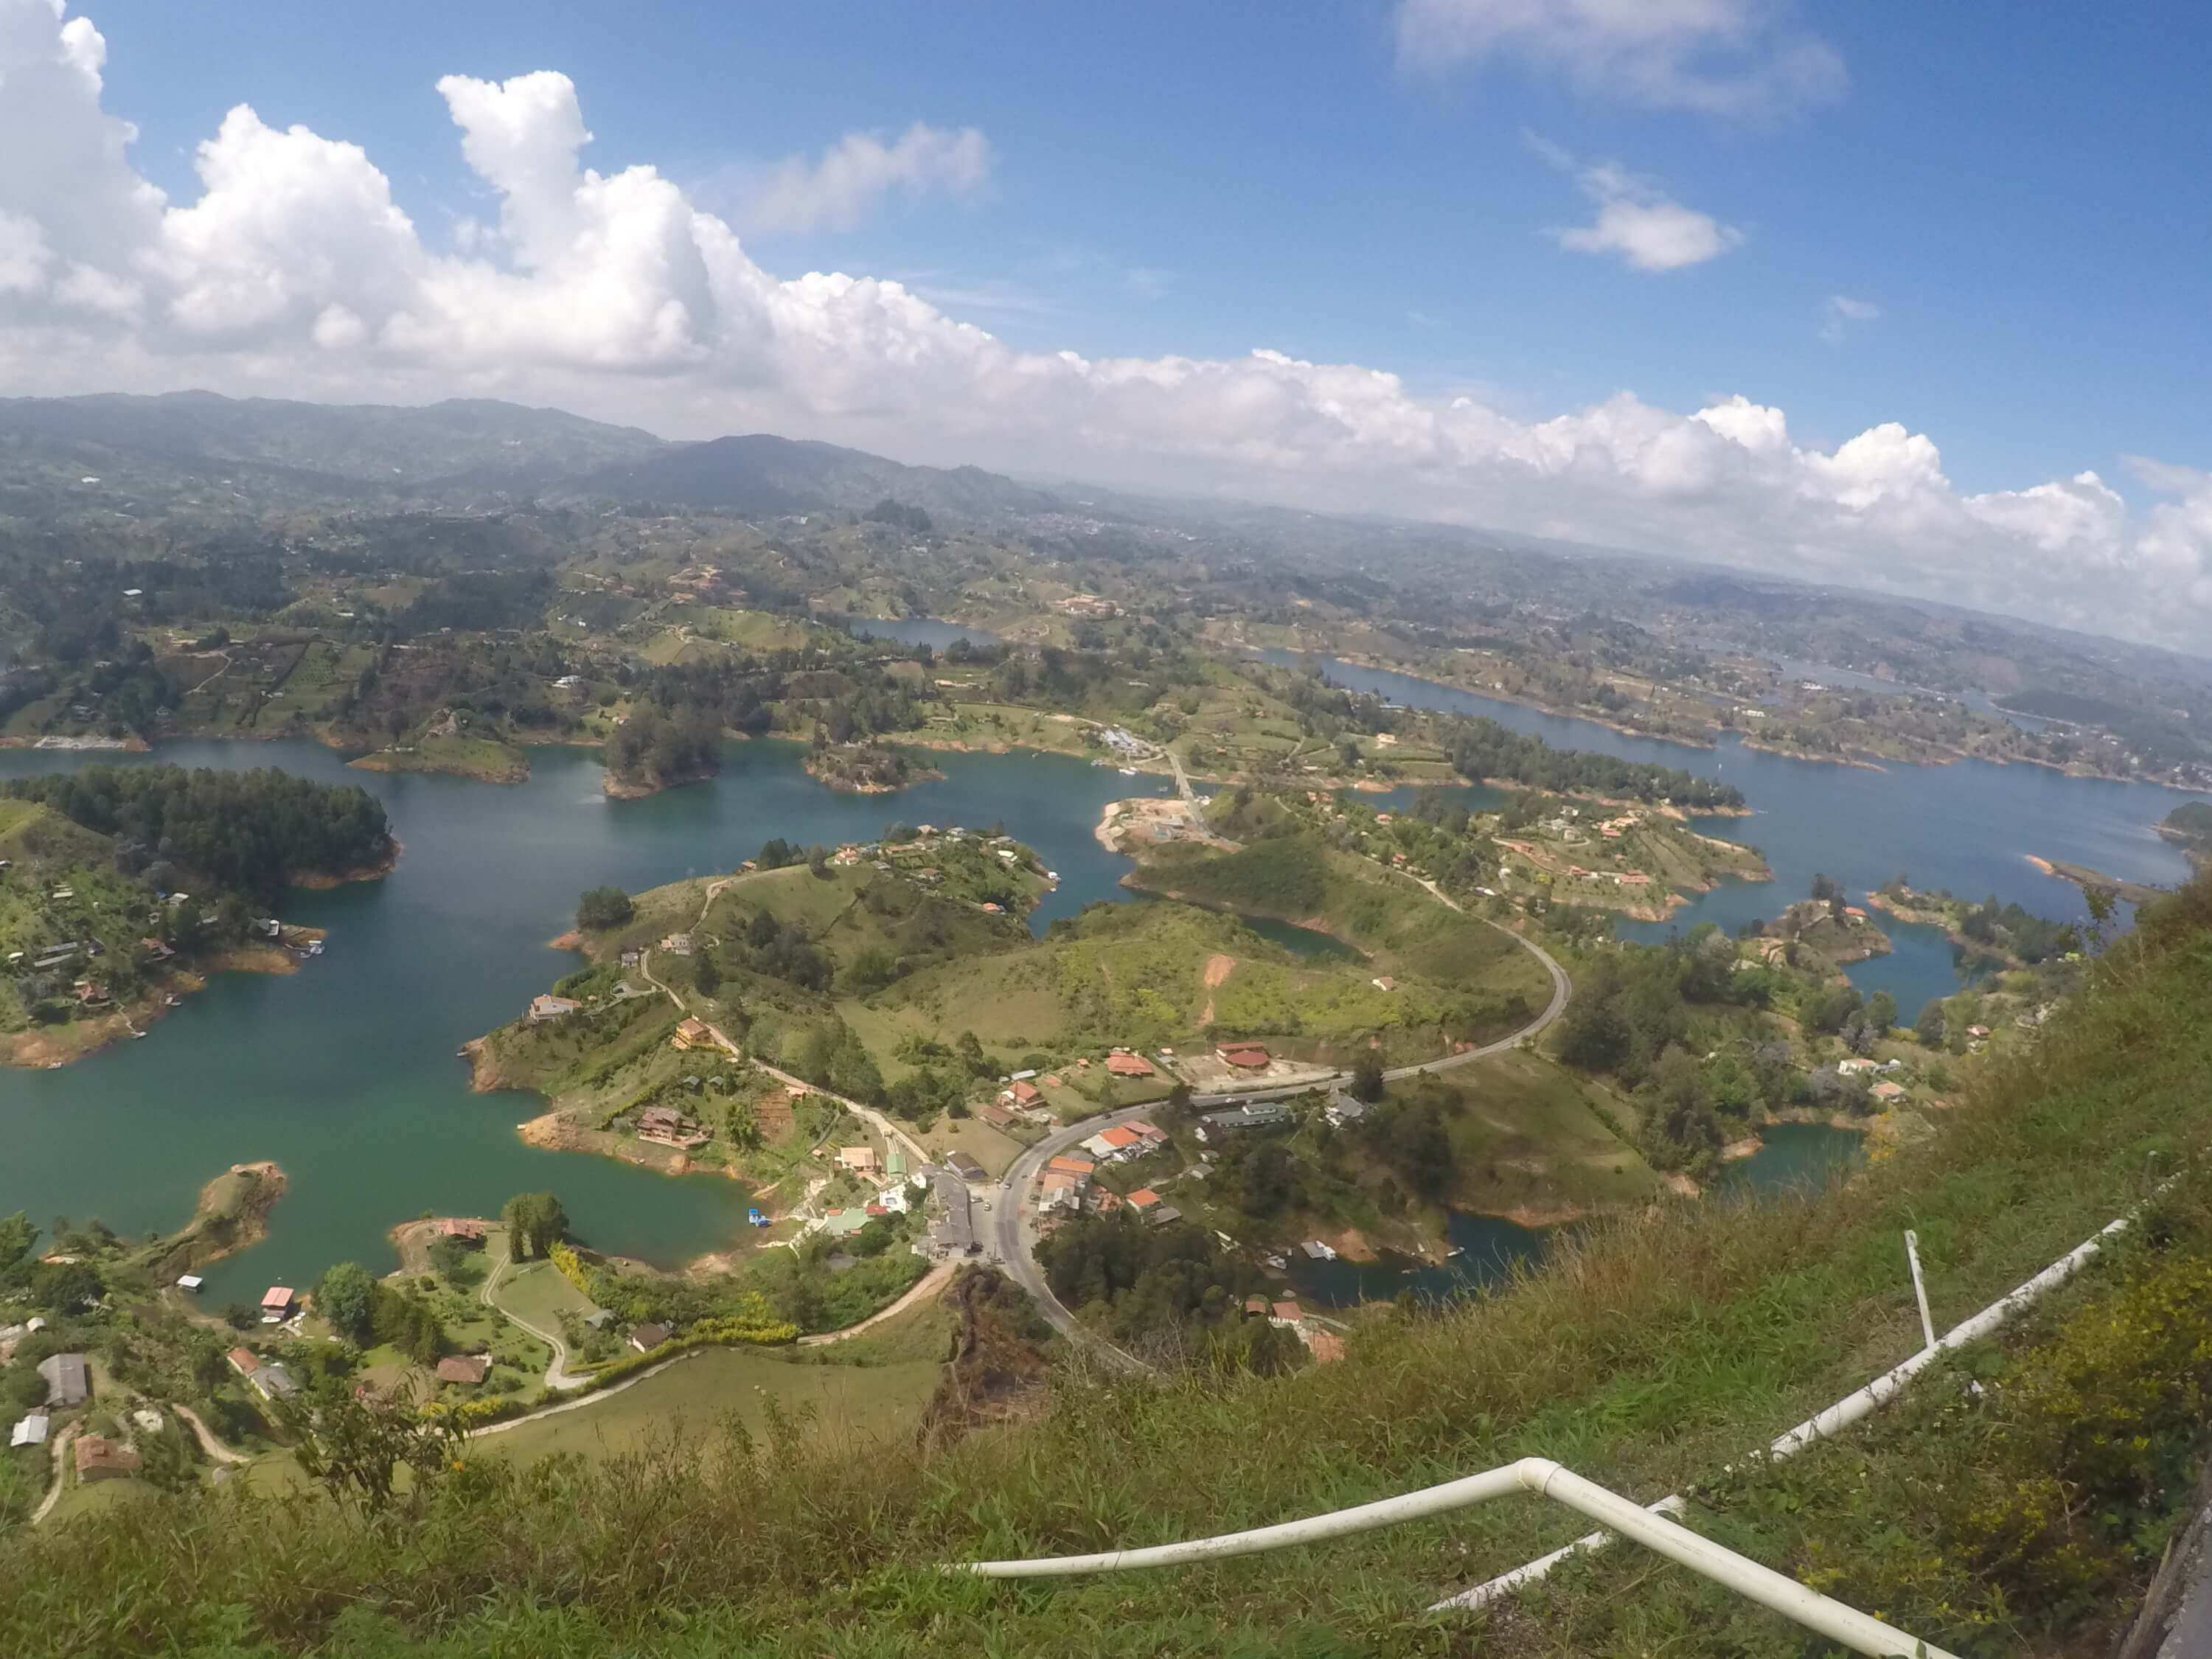 guatape rock from above